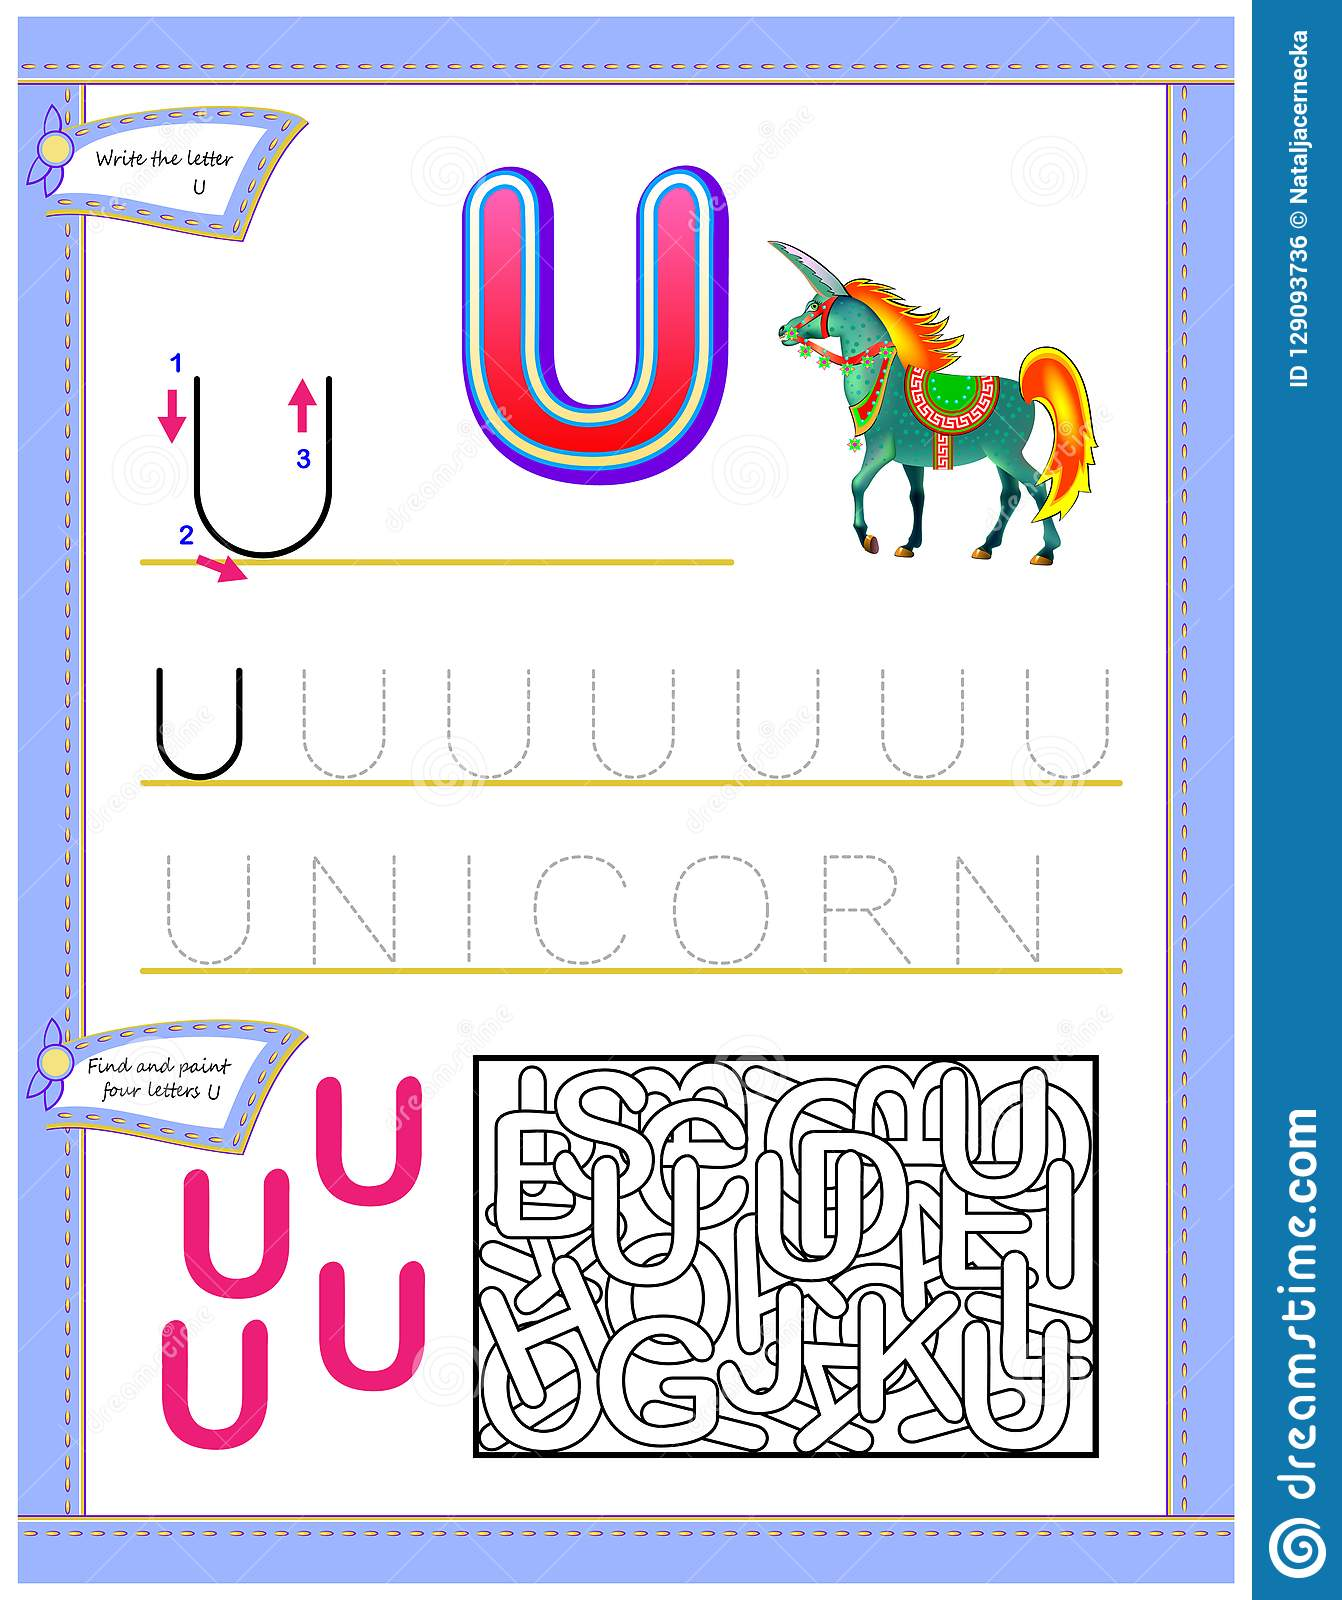 Worksheet For Kids With Letter U For Study English